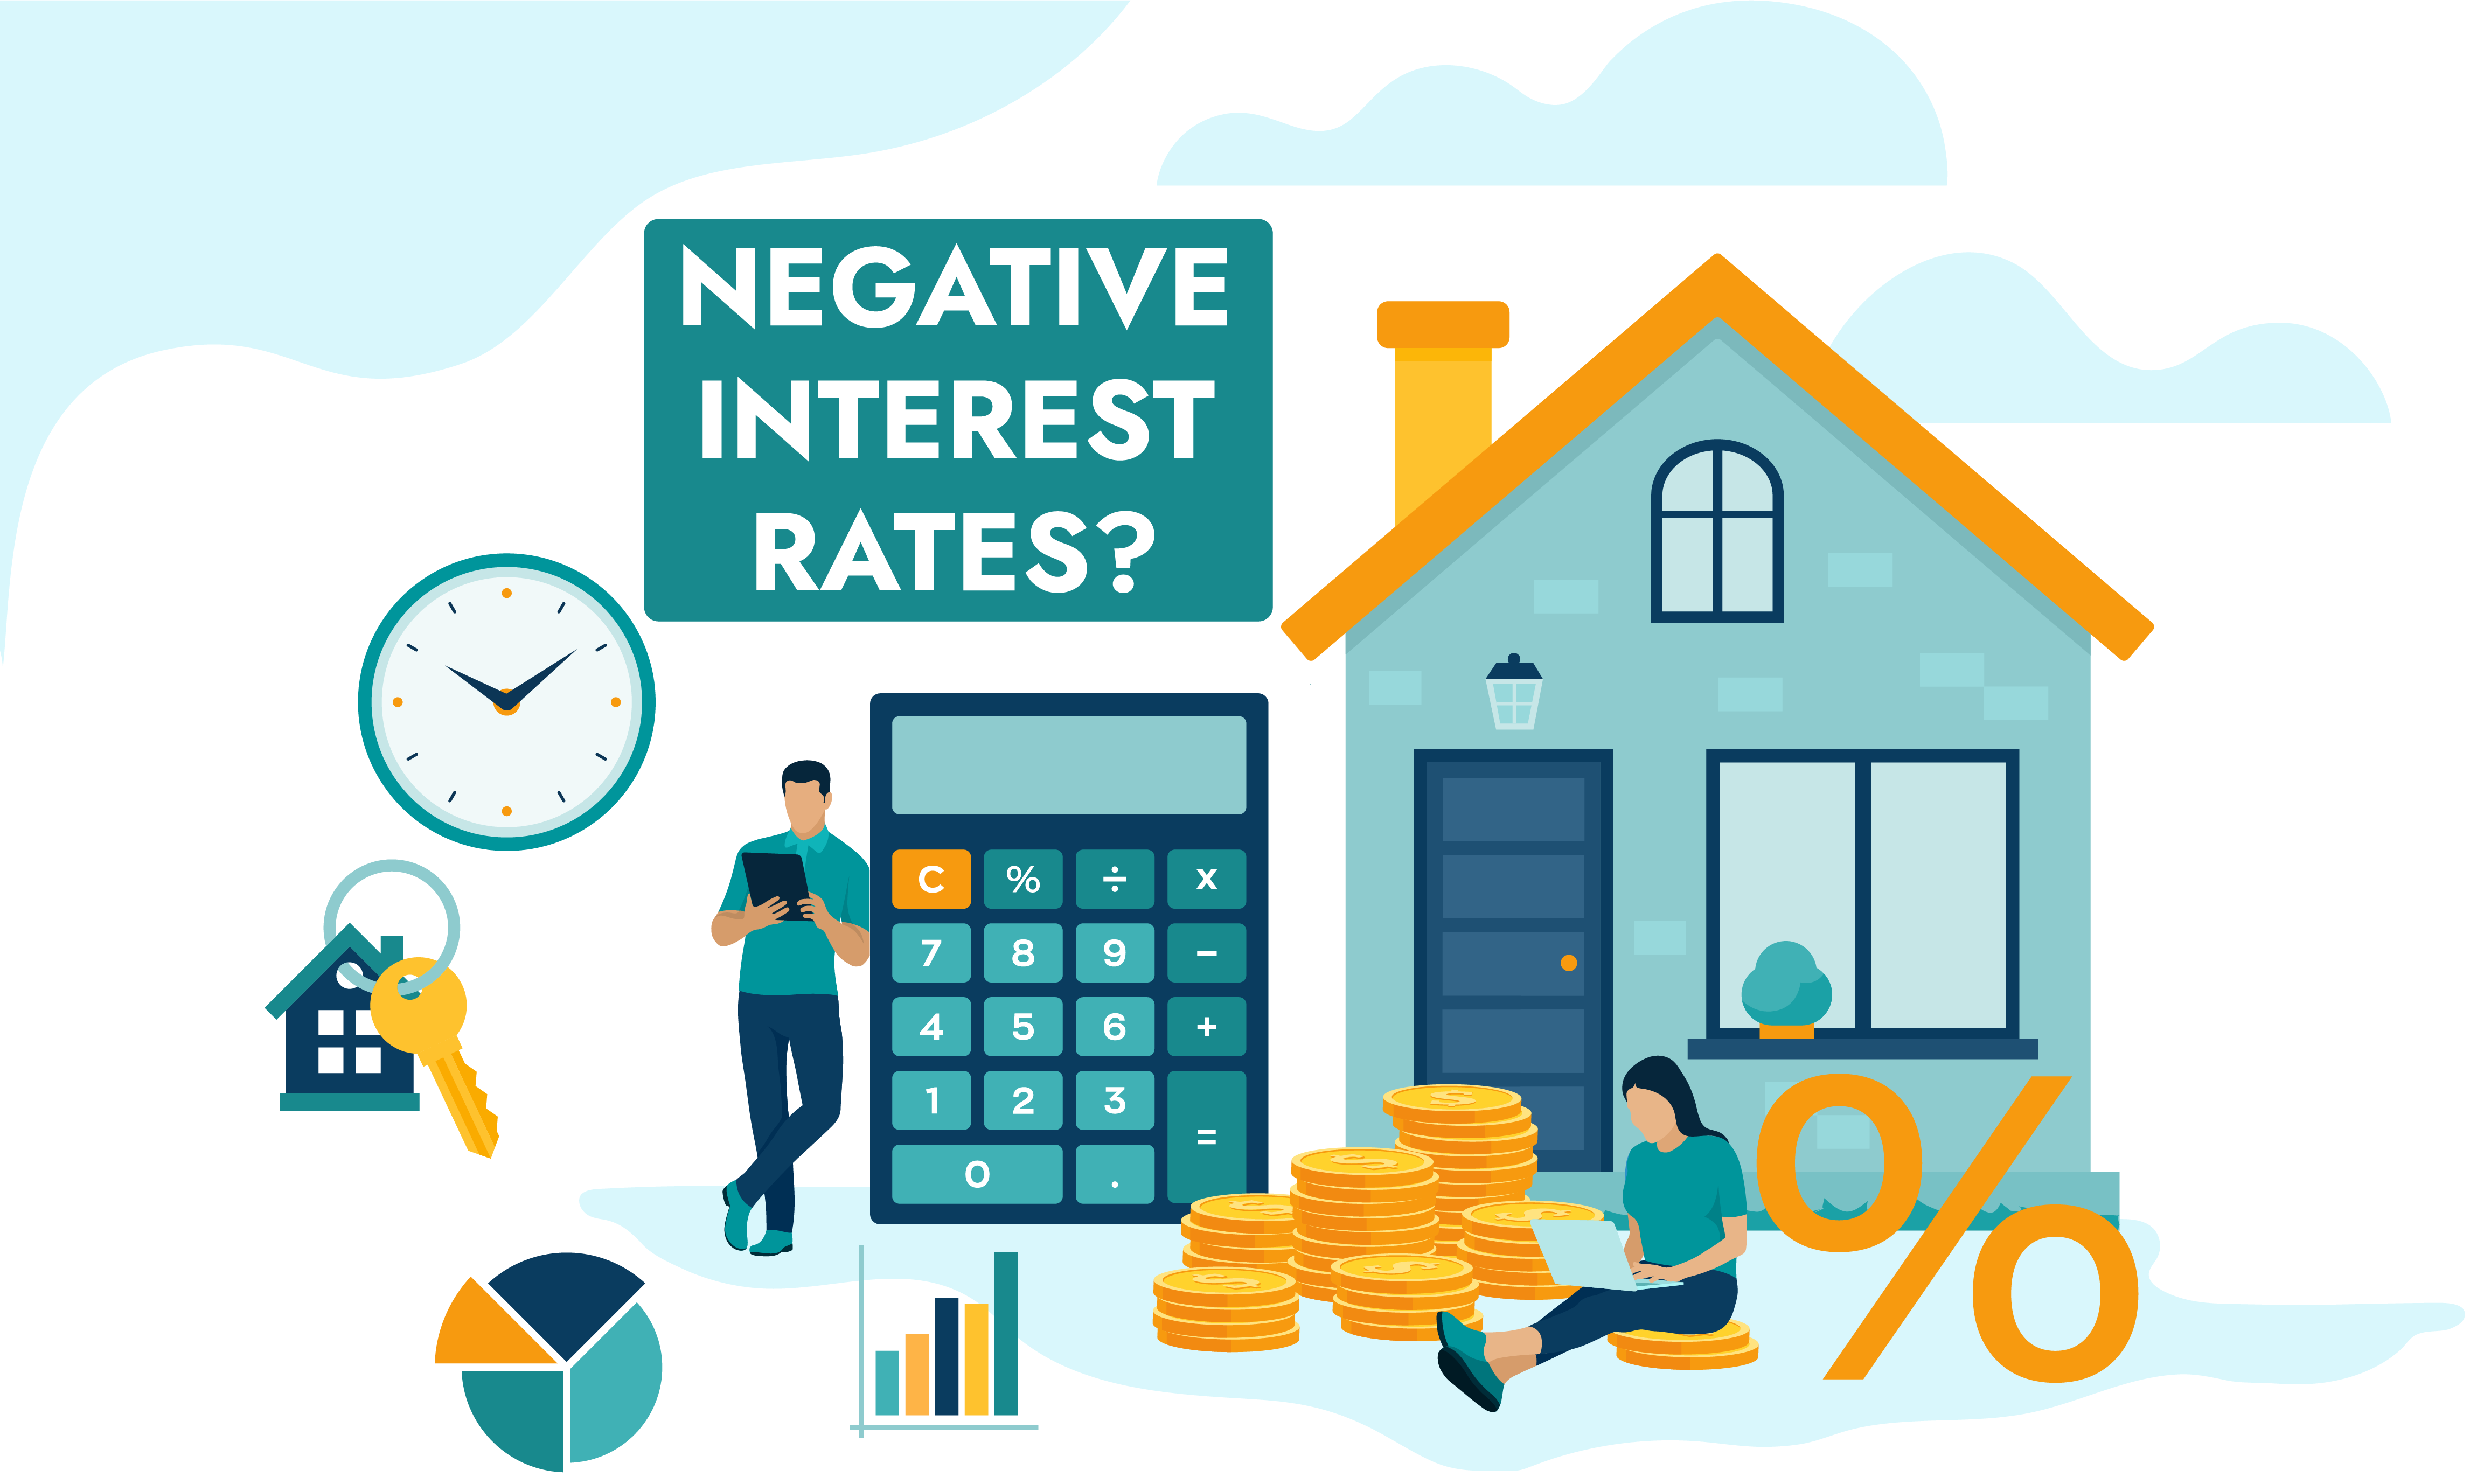 Heard about negative interest rates?